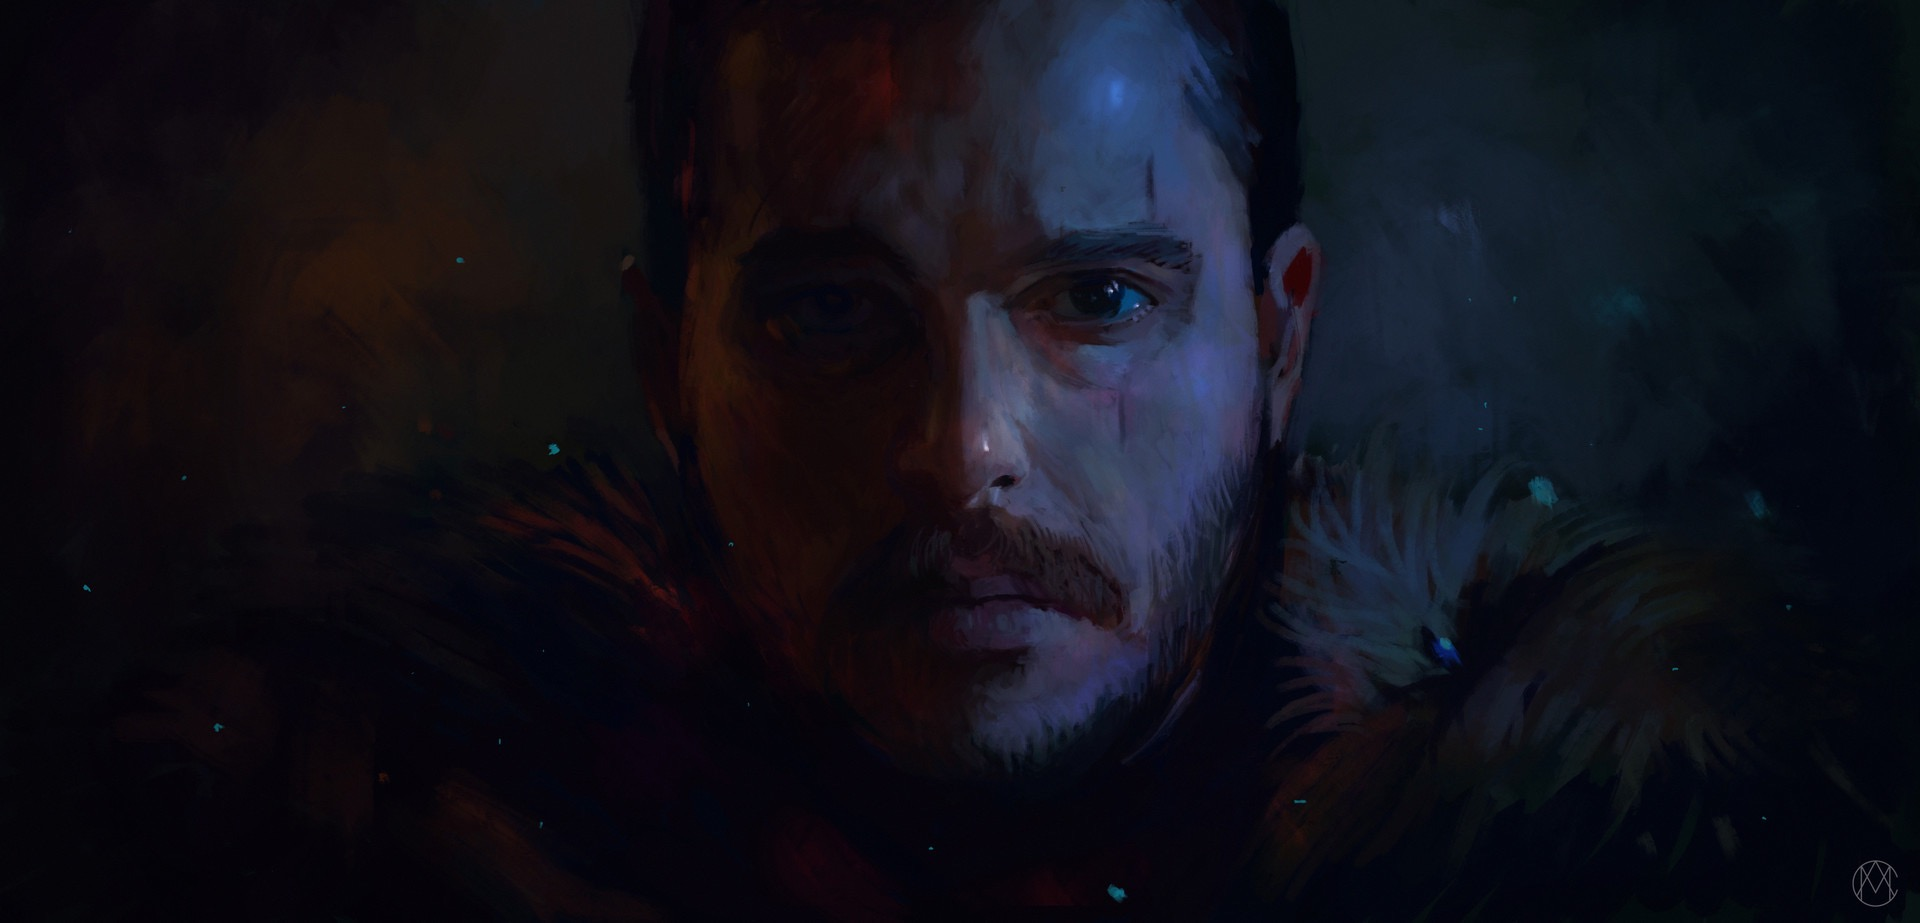 Jon Snow Aegon Targaryen A Song Of Ice And Fire Aegon